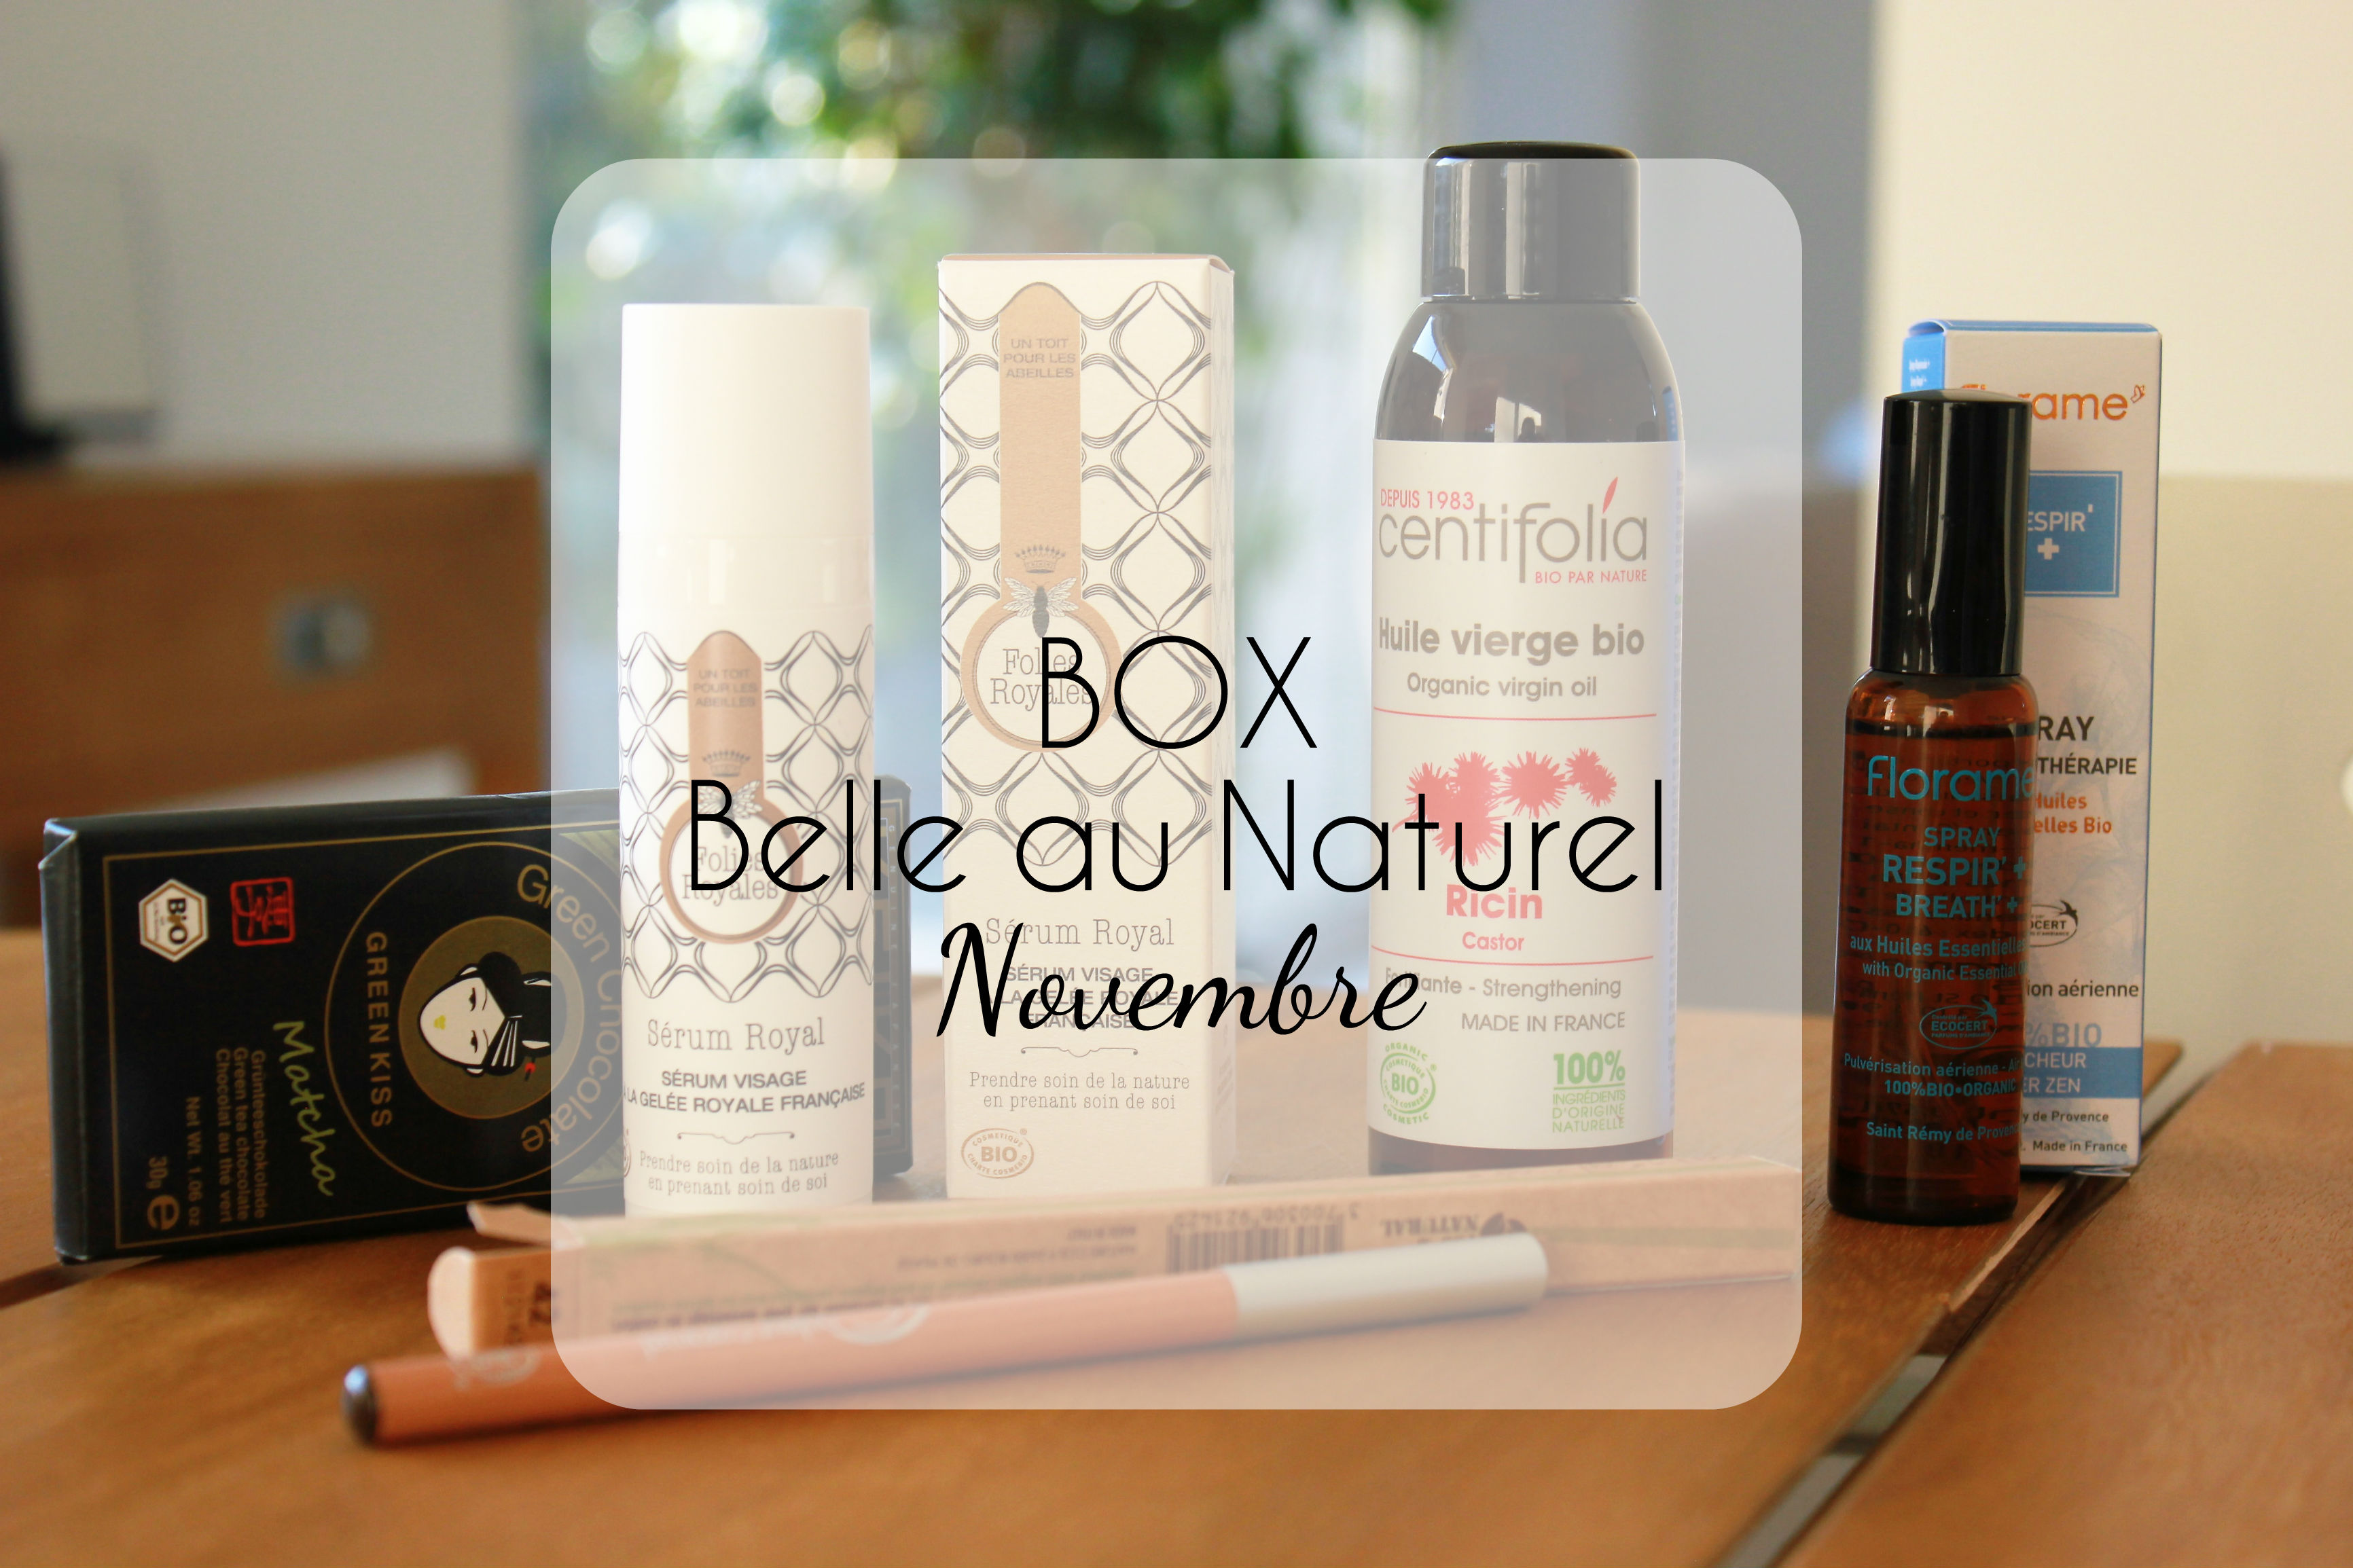 Box Belle au Naturel